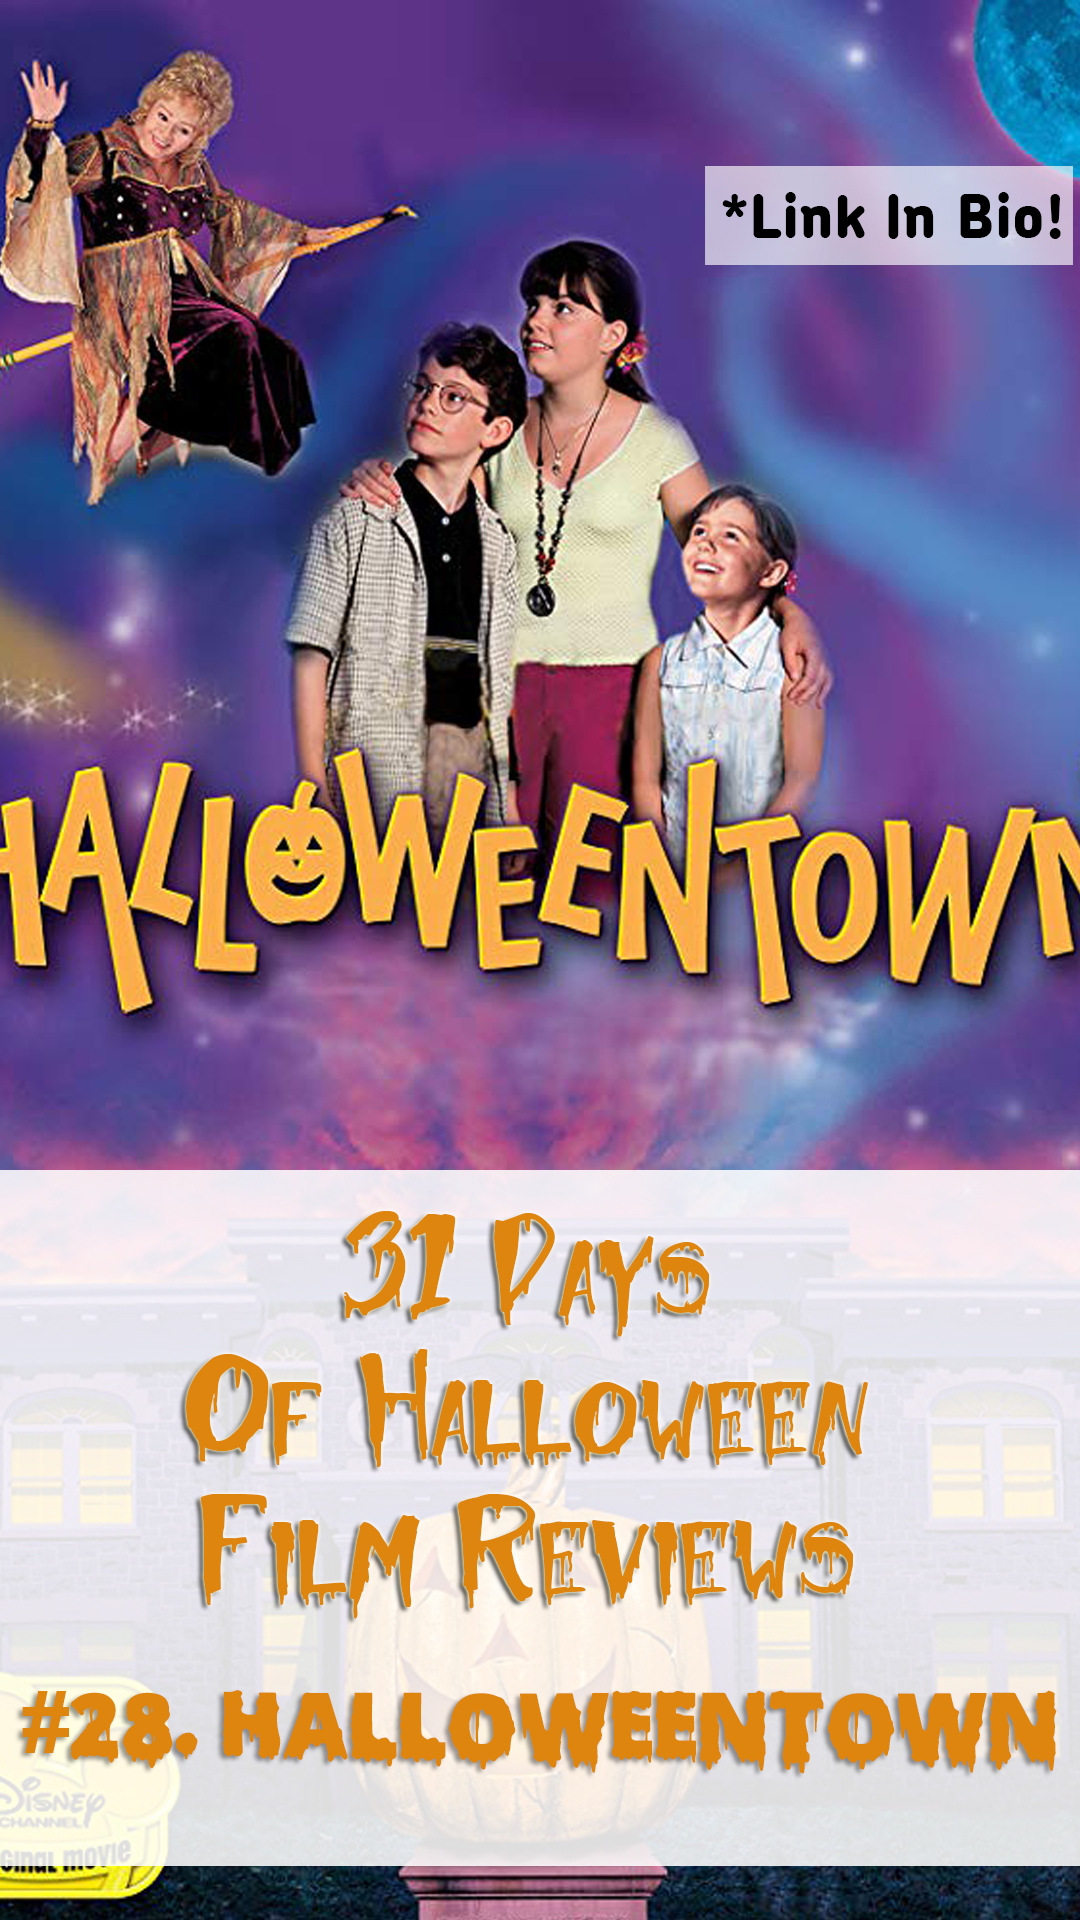 Halloweentown Film Review